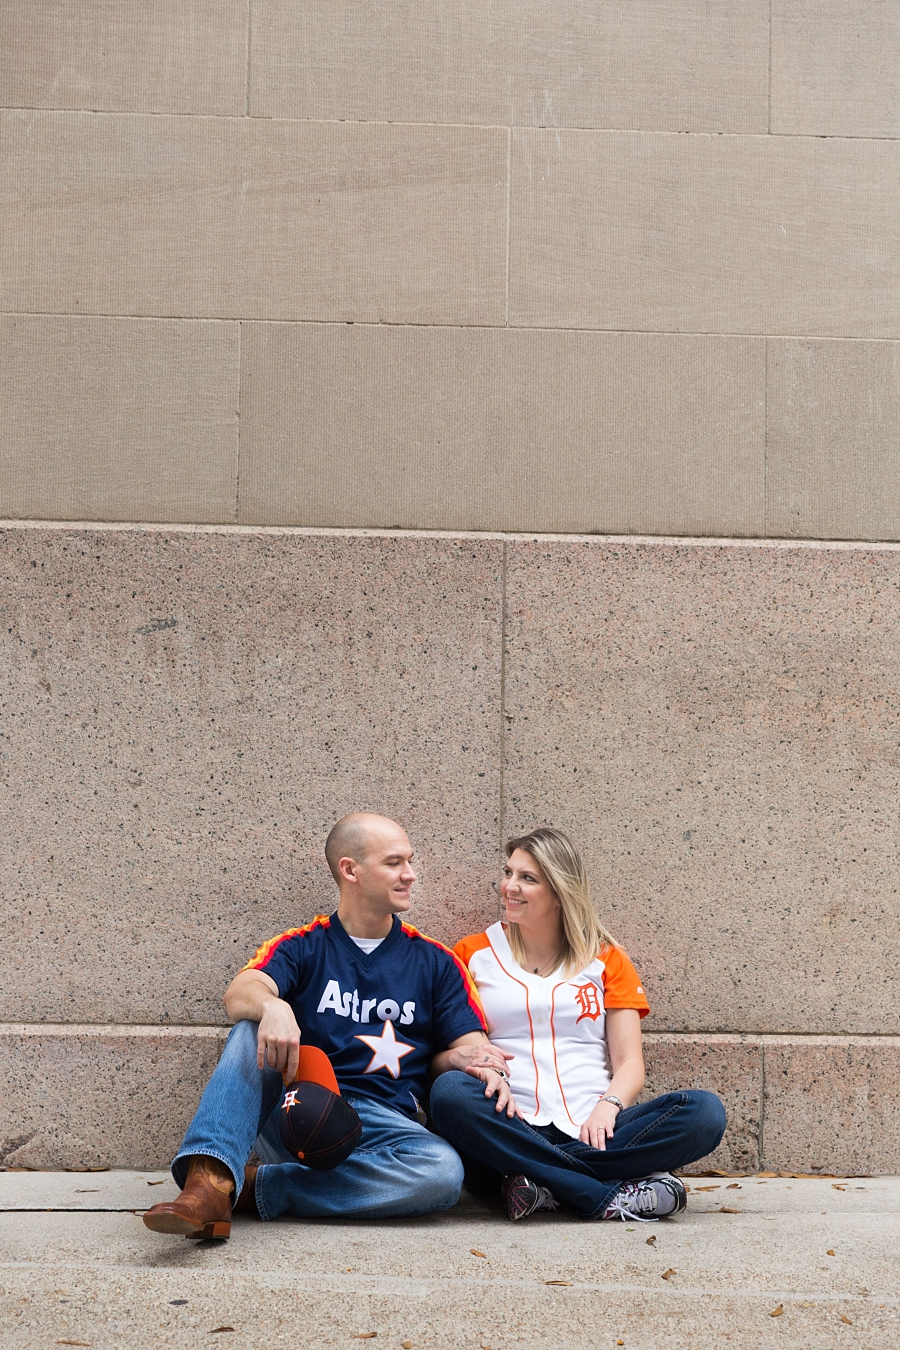 Stacy-Anderson-Photography-Houston-Astros-Baseball-engagement-photo_0040.jpg